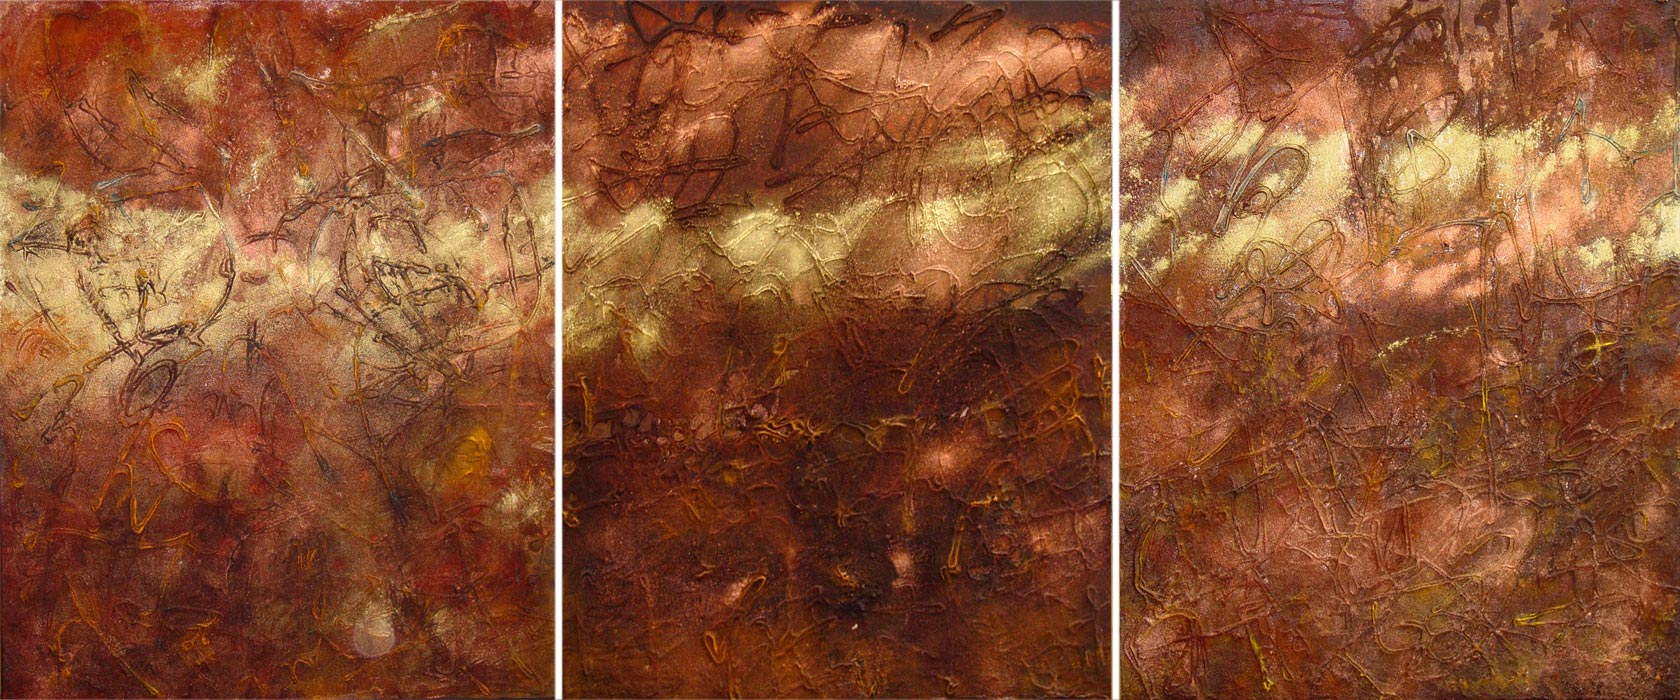 "Crossing Triptych (24"" x 30"" each, mixed media & oil on canvas, 2004)"